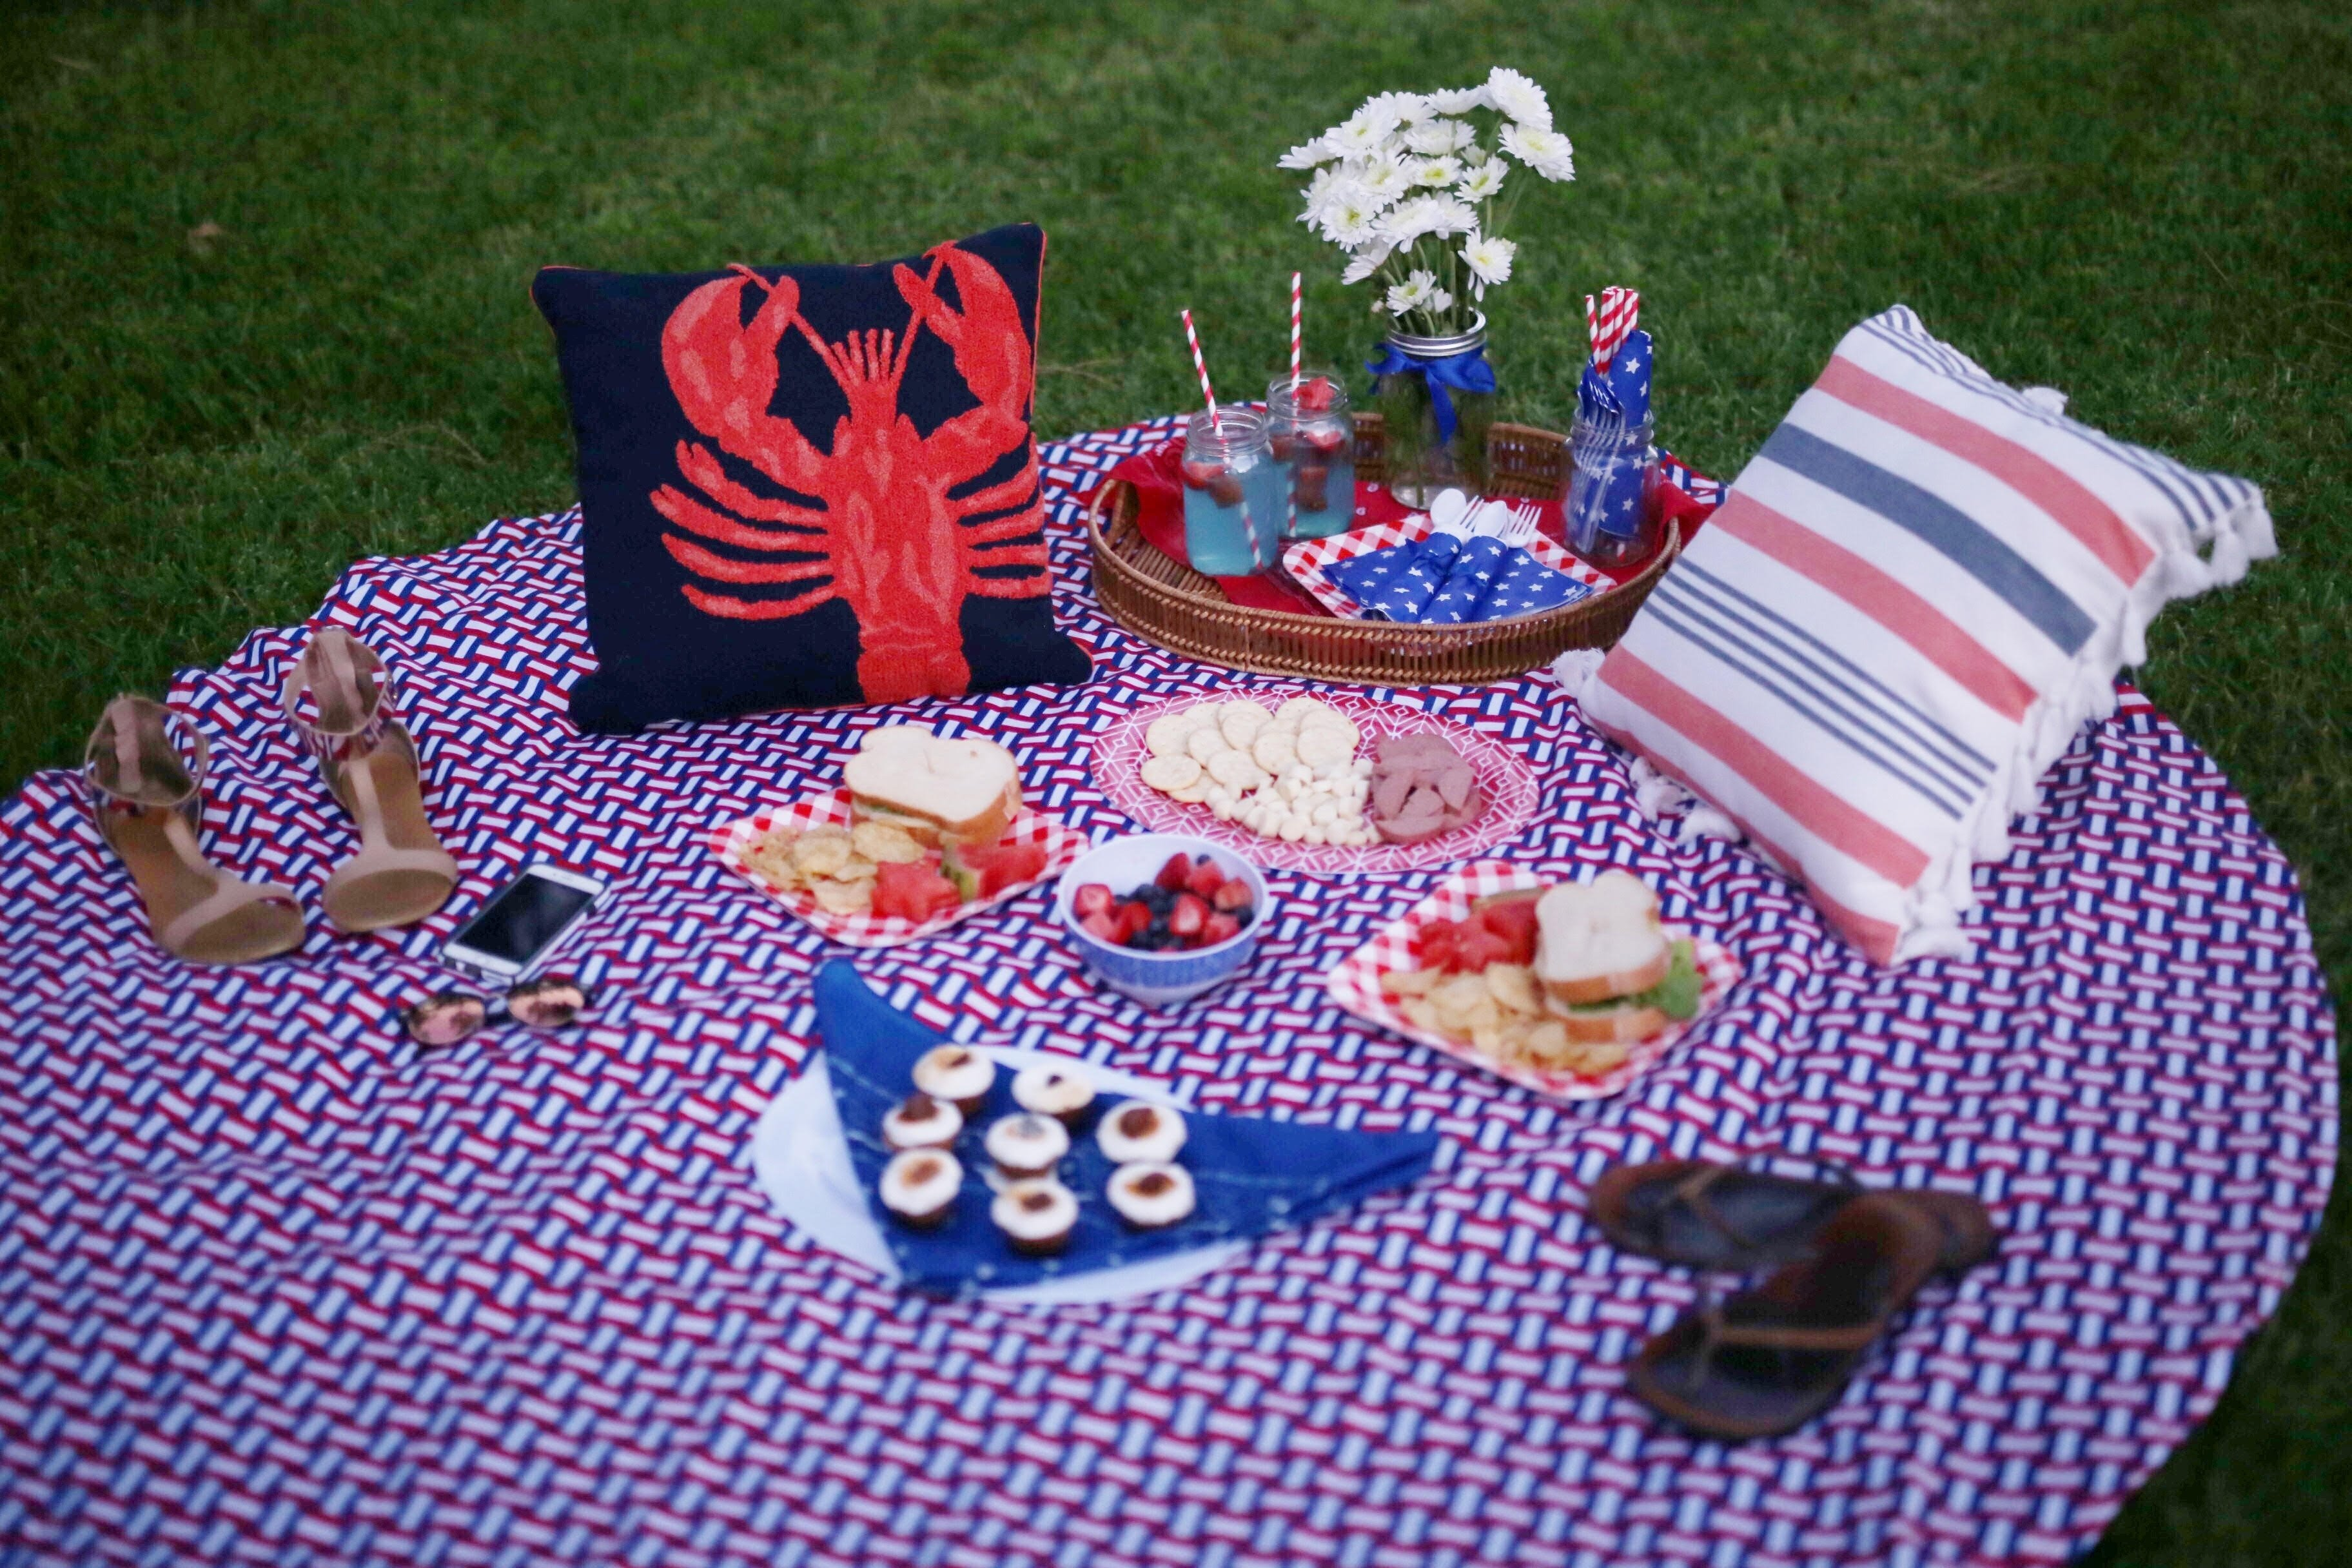 10 Perfect Fourth Of July Picnic Ideas fourth of july picnic style me samira 2 2021